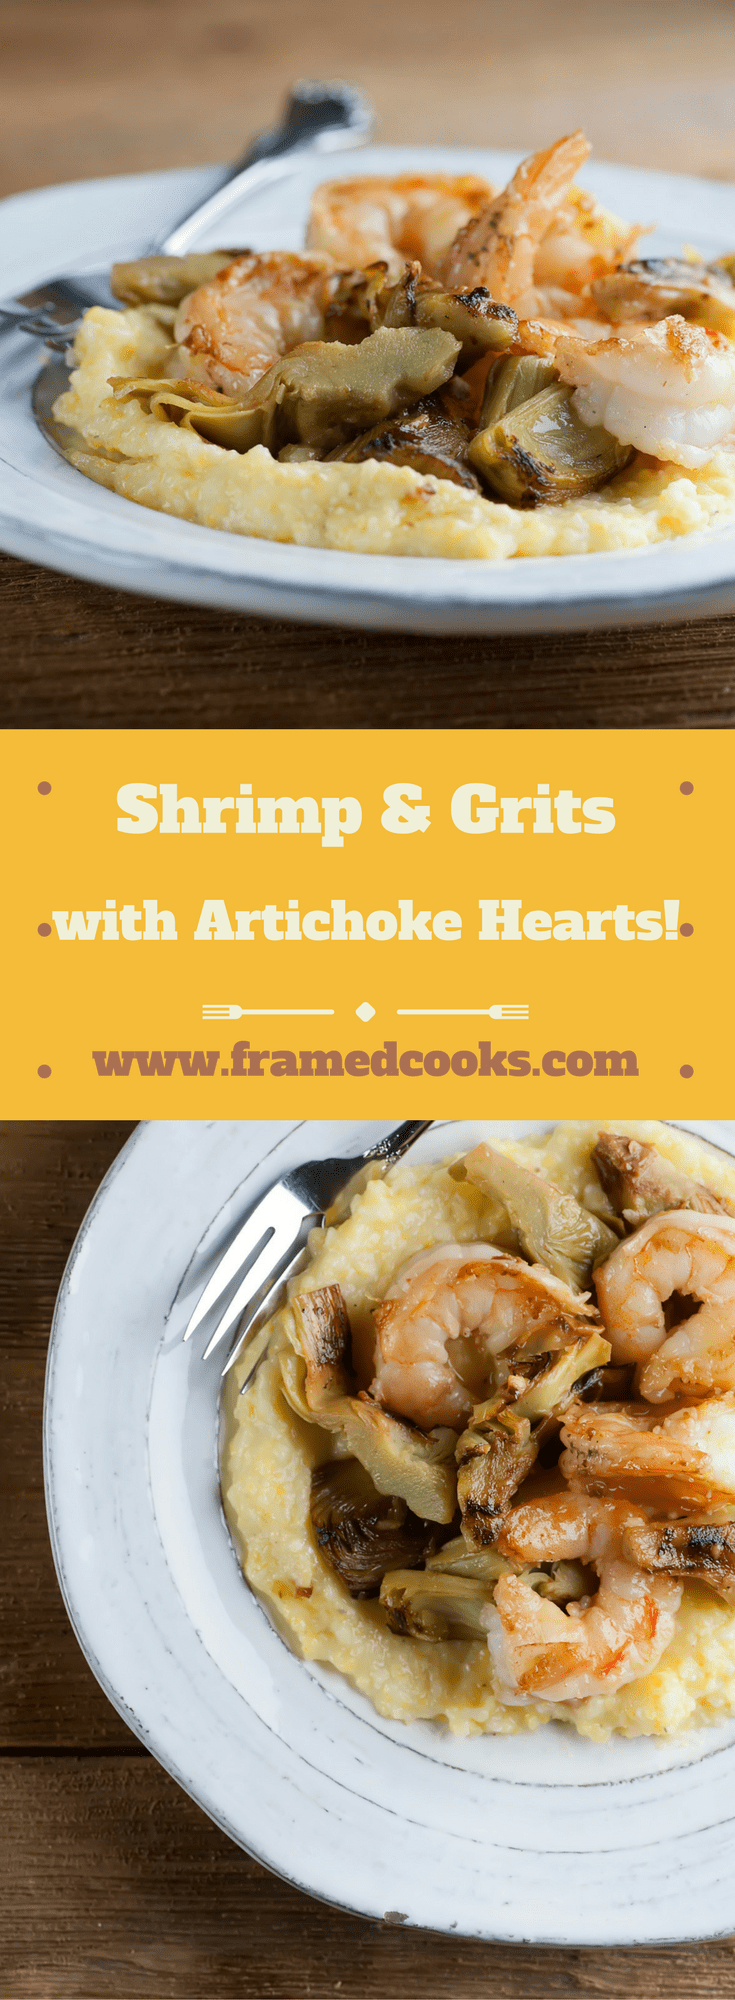 Kick your shrimp and grits up a notch by adding artichokes! This easy recipe for shrimp and grits with artichoke hearts is a perfect comfort food supper.